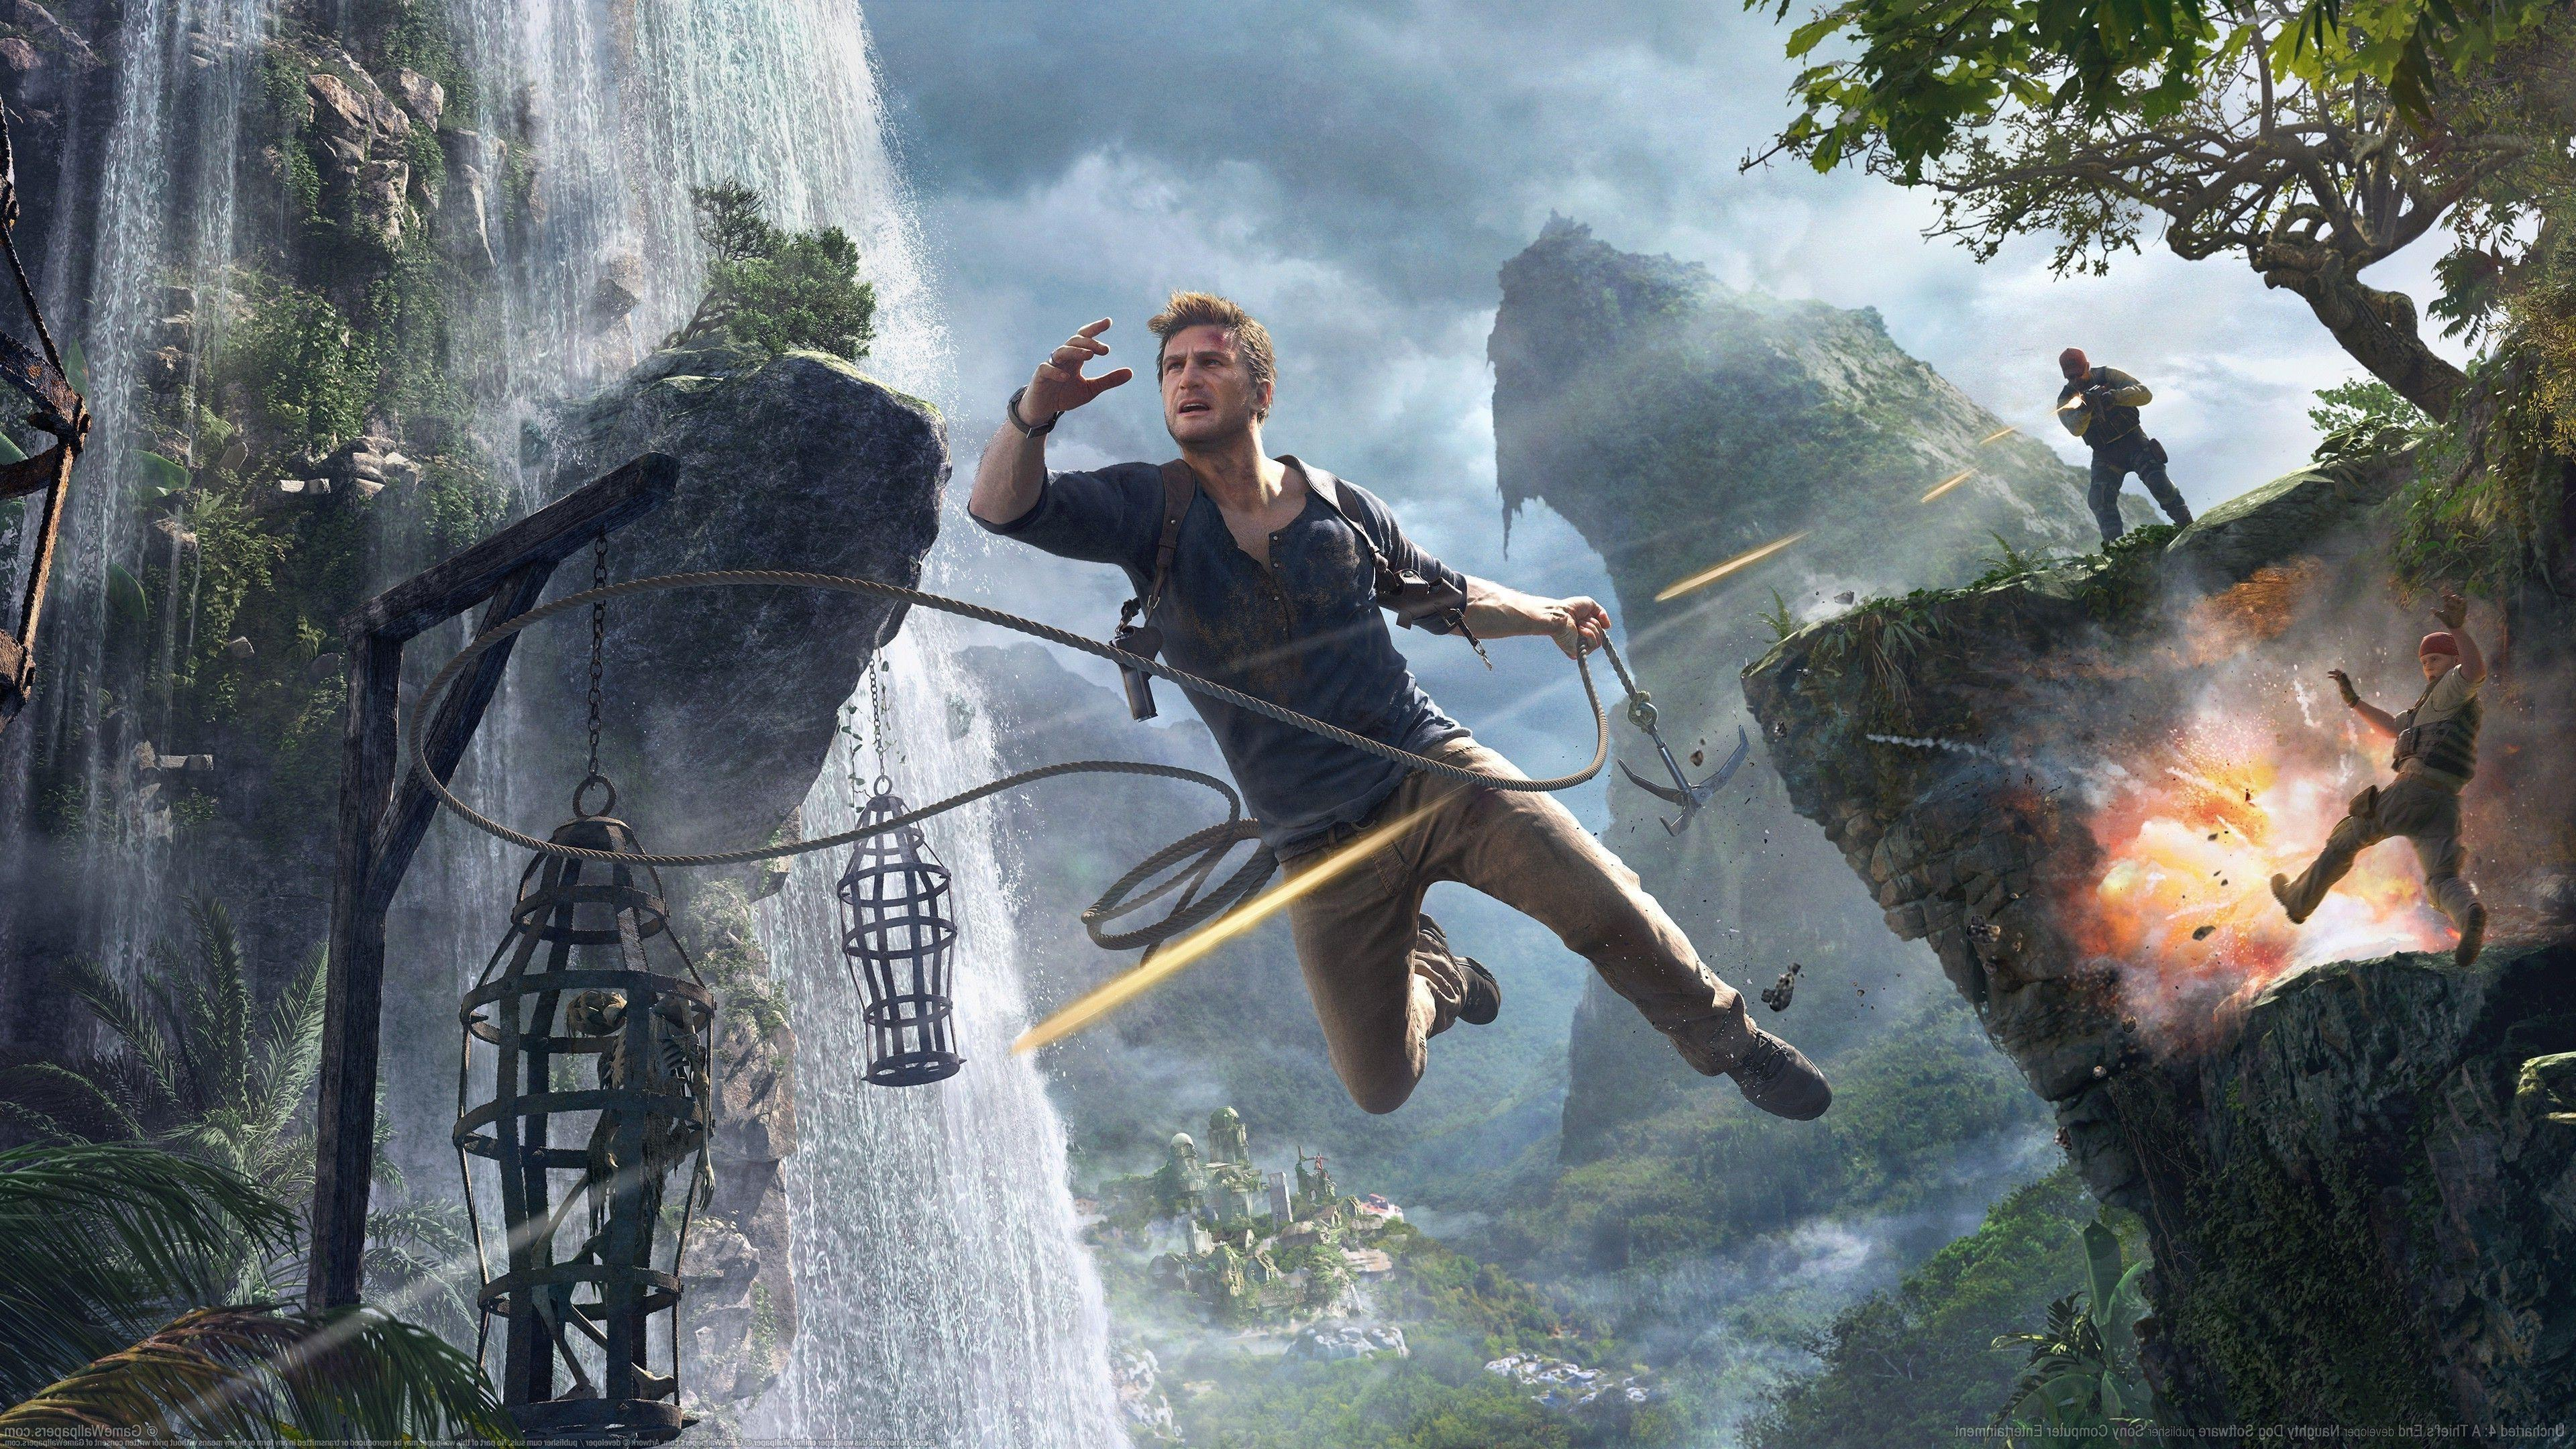 Uncharted 4 wallpapers wallpaper cave - Uncharted 4 wallpaper ps4 ...